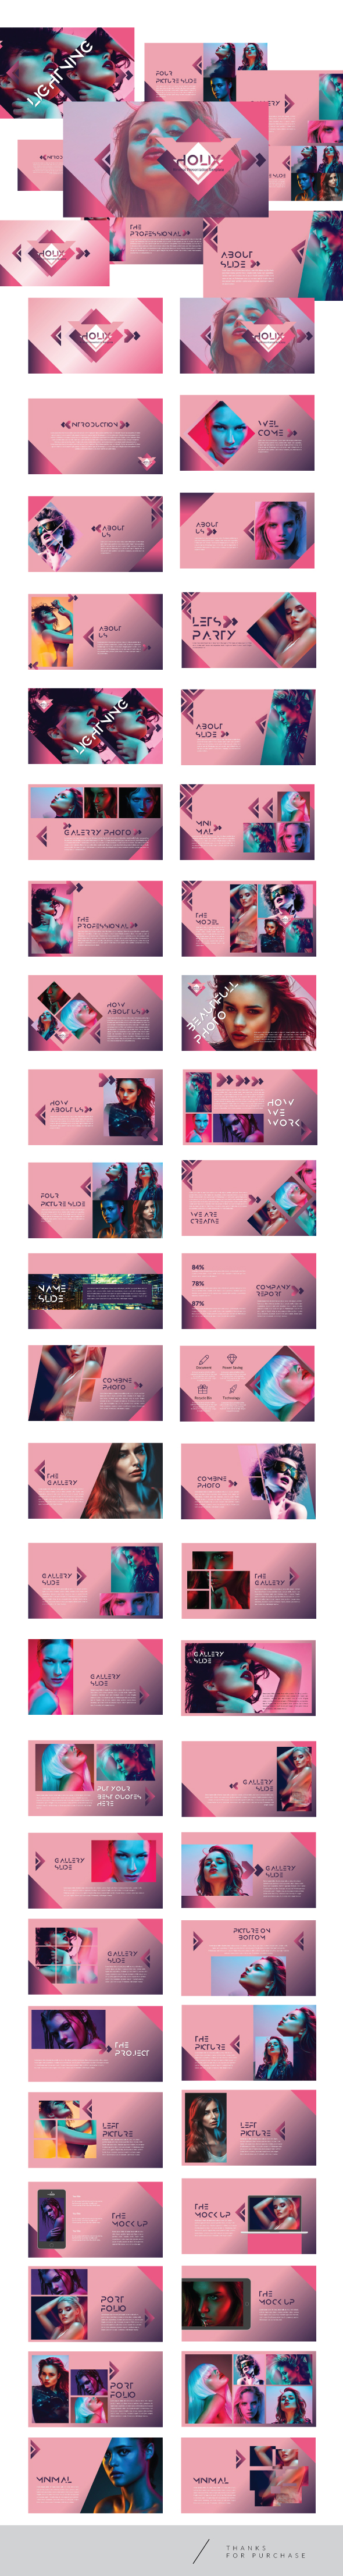 Holix - Multipurpose Keynote Template - Creative Keynote Templates